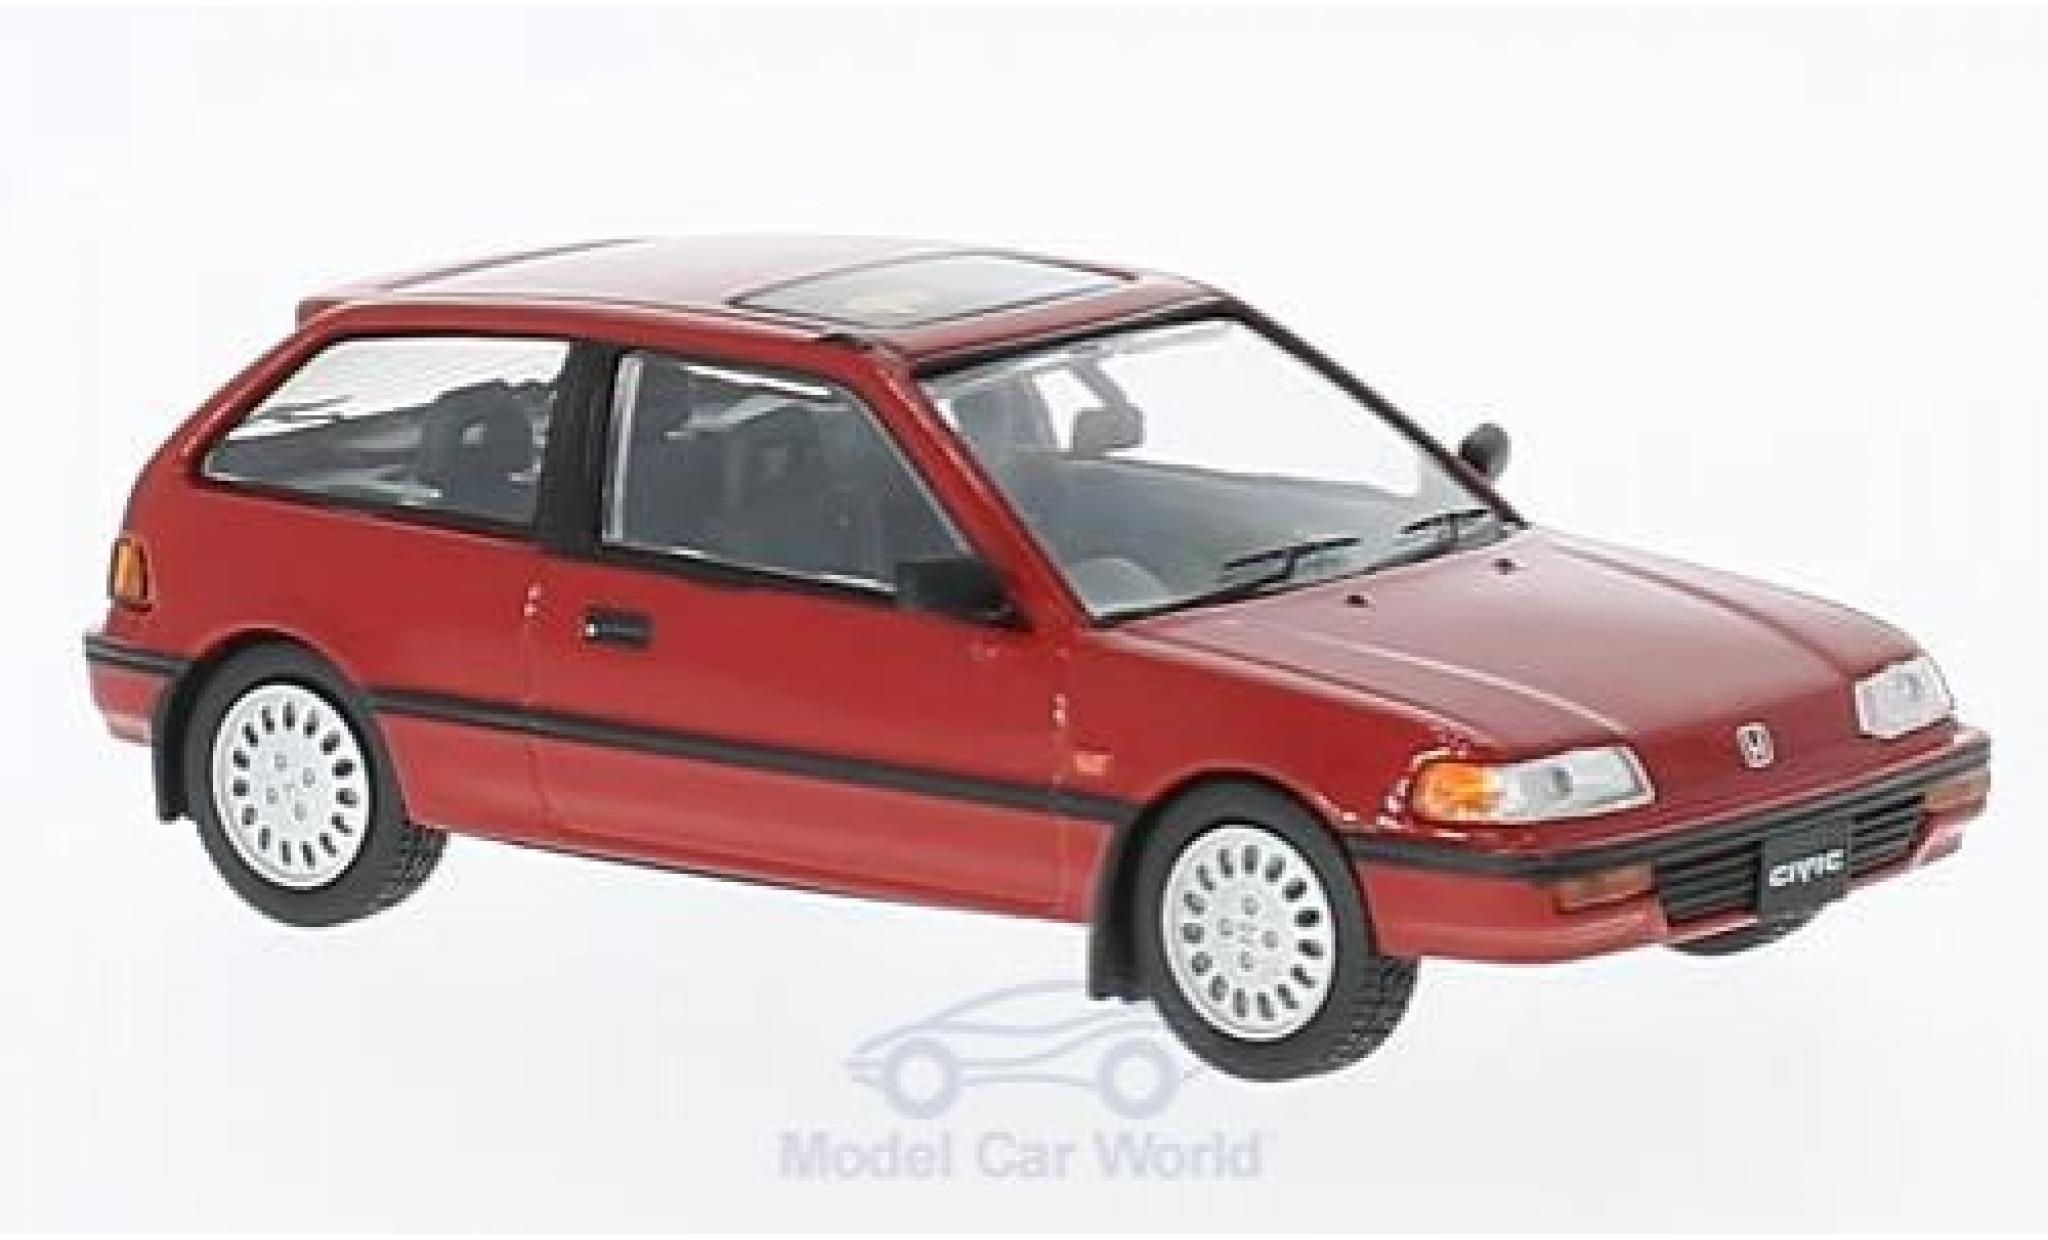 Honda Civic 1/43 First 43 Models rouge RHD 1987